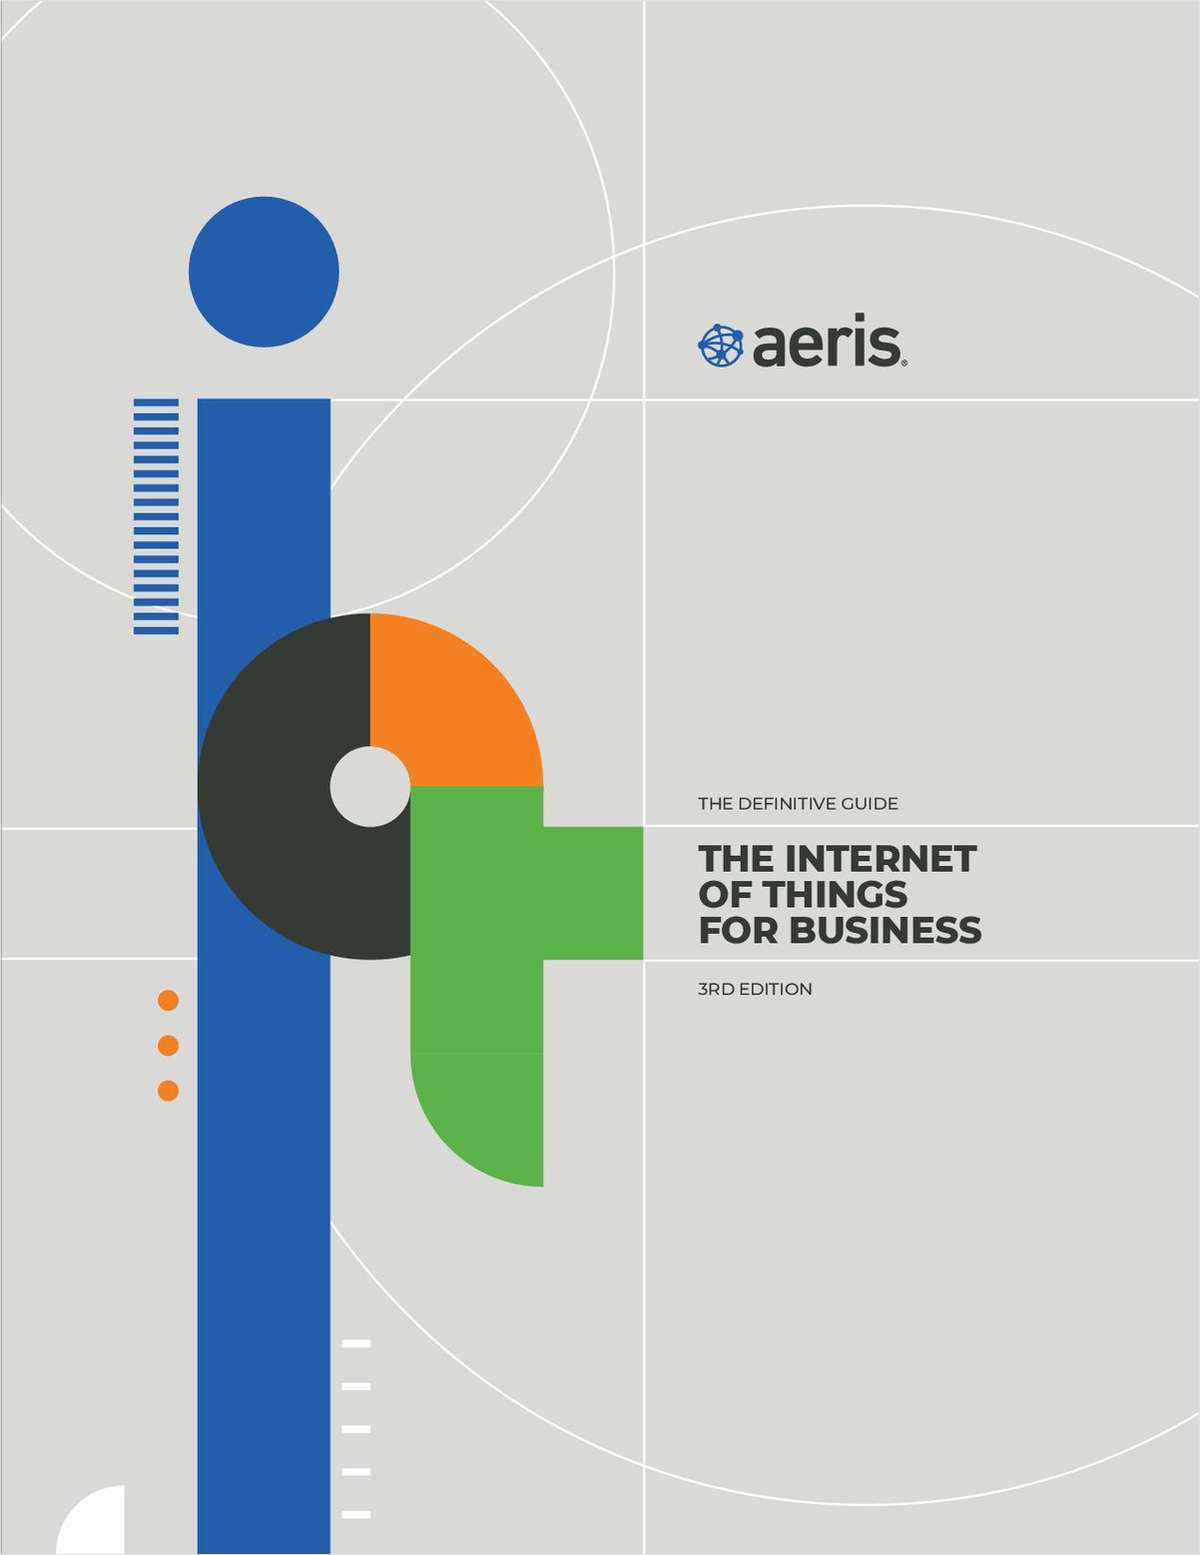 The Internet of Things for Business - 3rd Edition